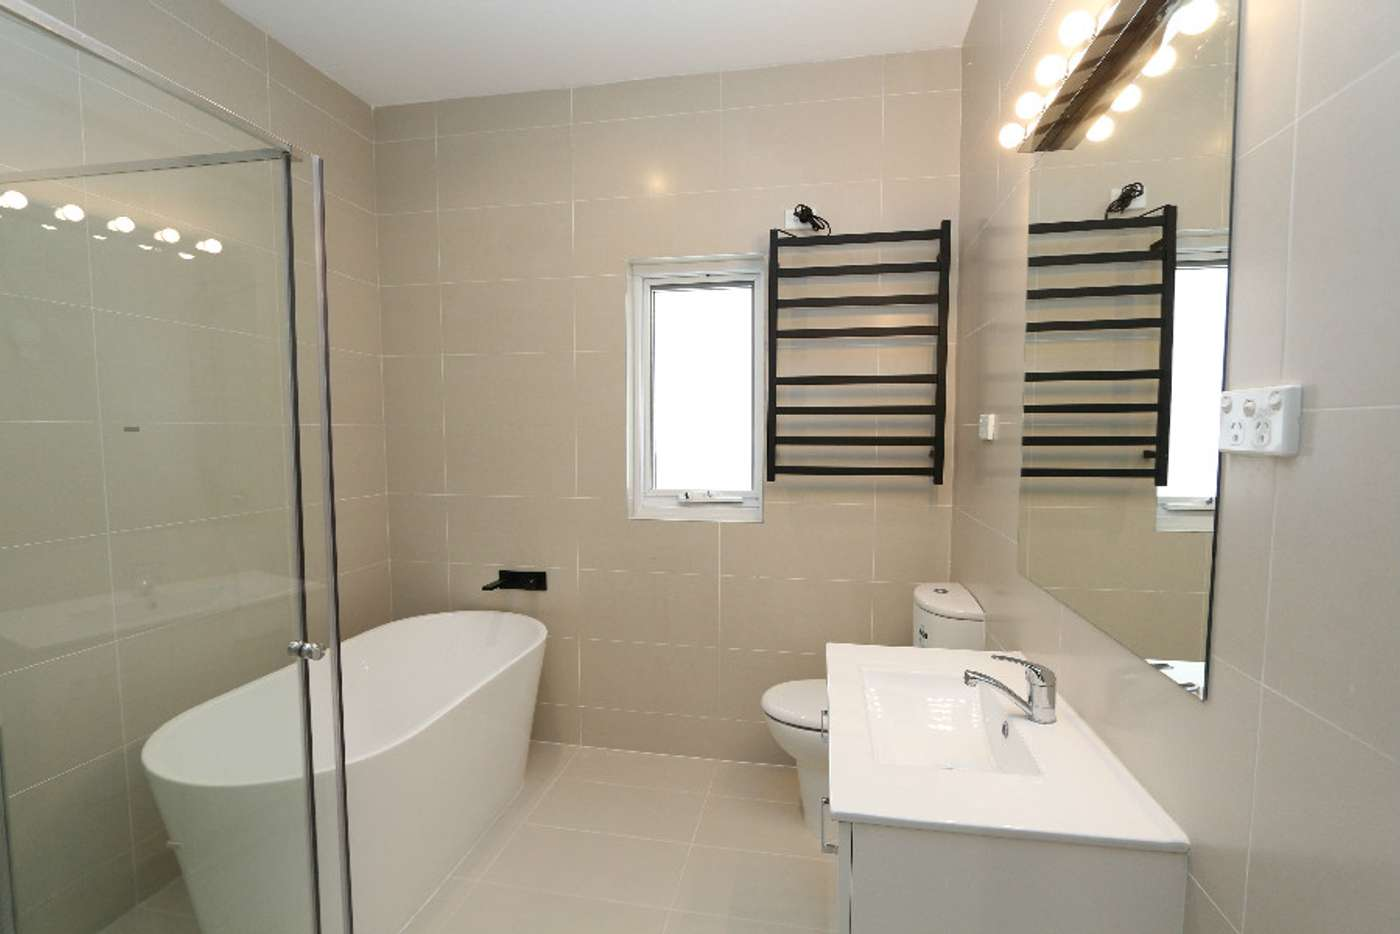 Seventh view of Homely house listing, 44 Ida Street, Hornsby NSW 2077